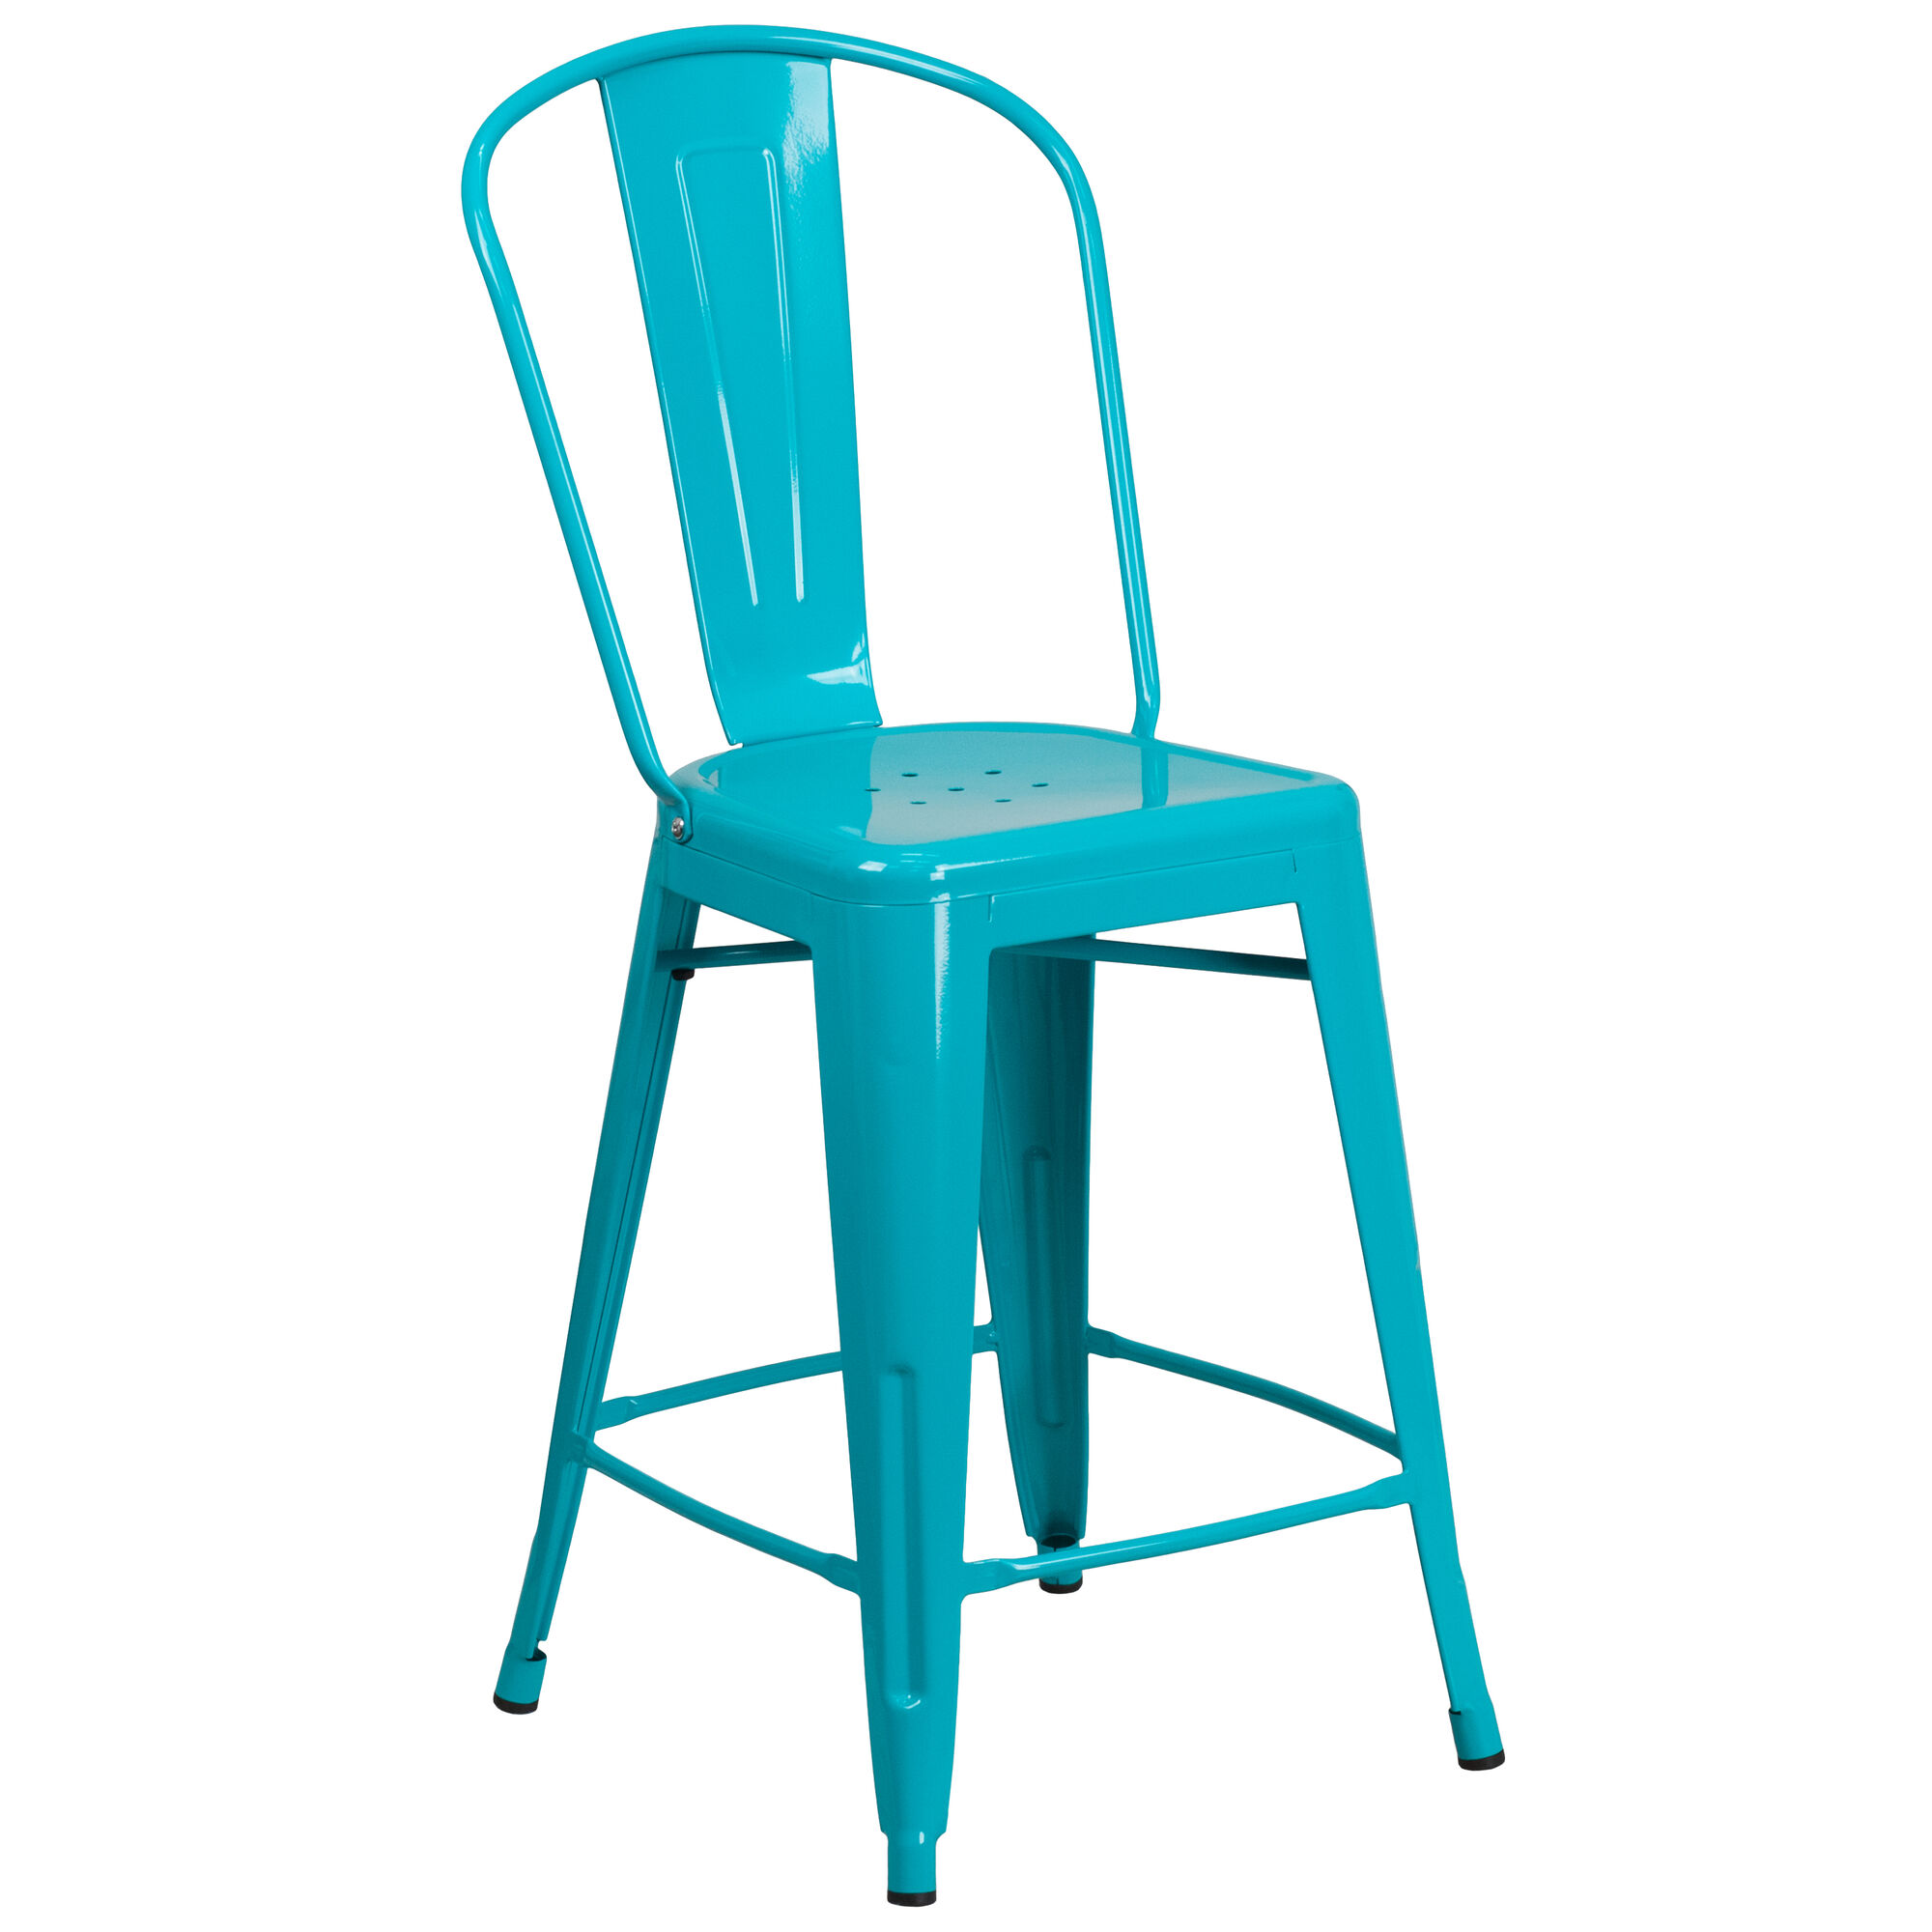 24 Quot Teal Metal Outdoor Stool Et 3534 24 Cb Gg Bizchair Com